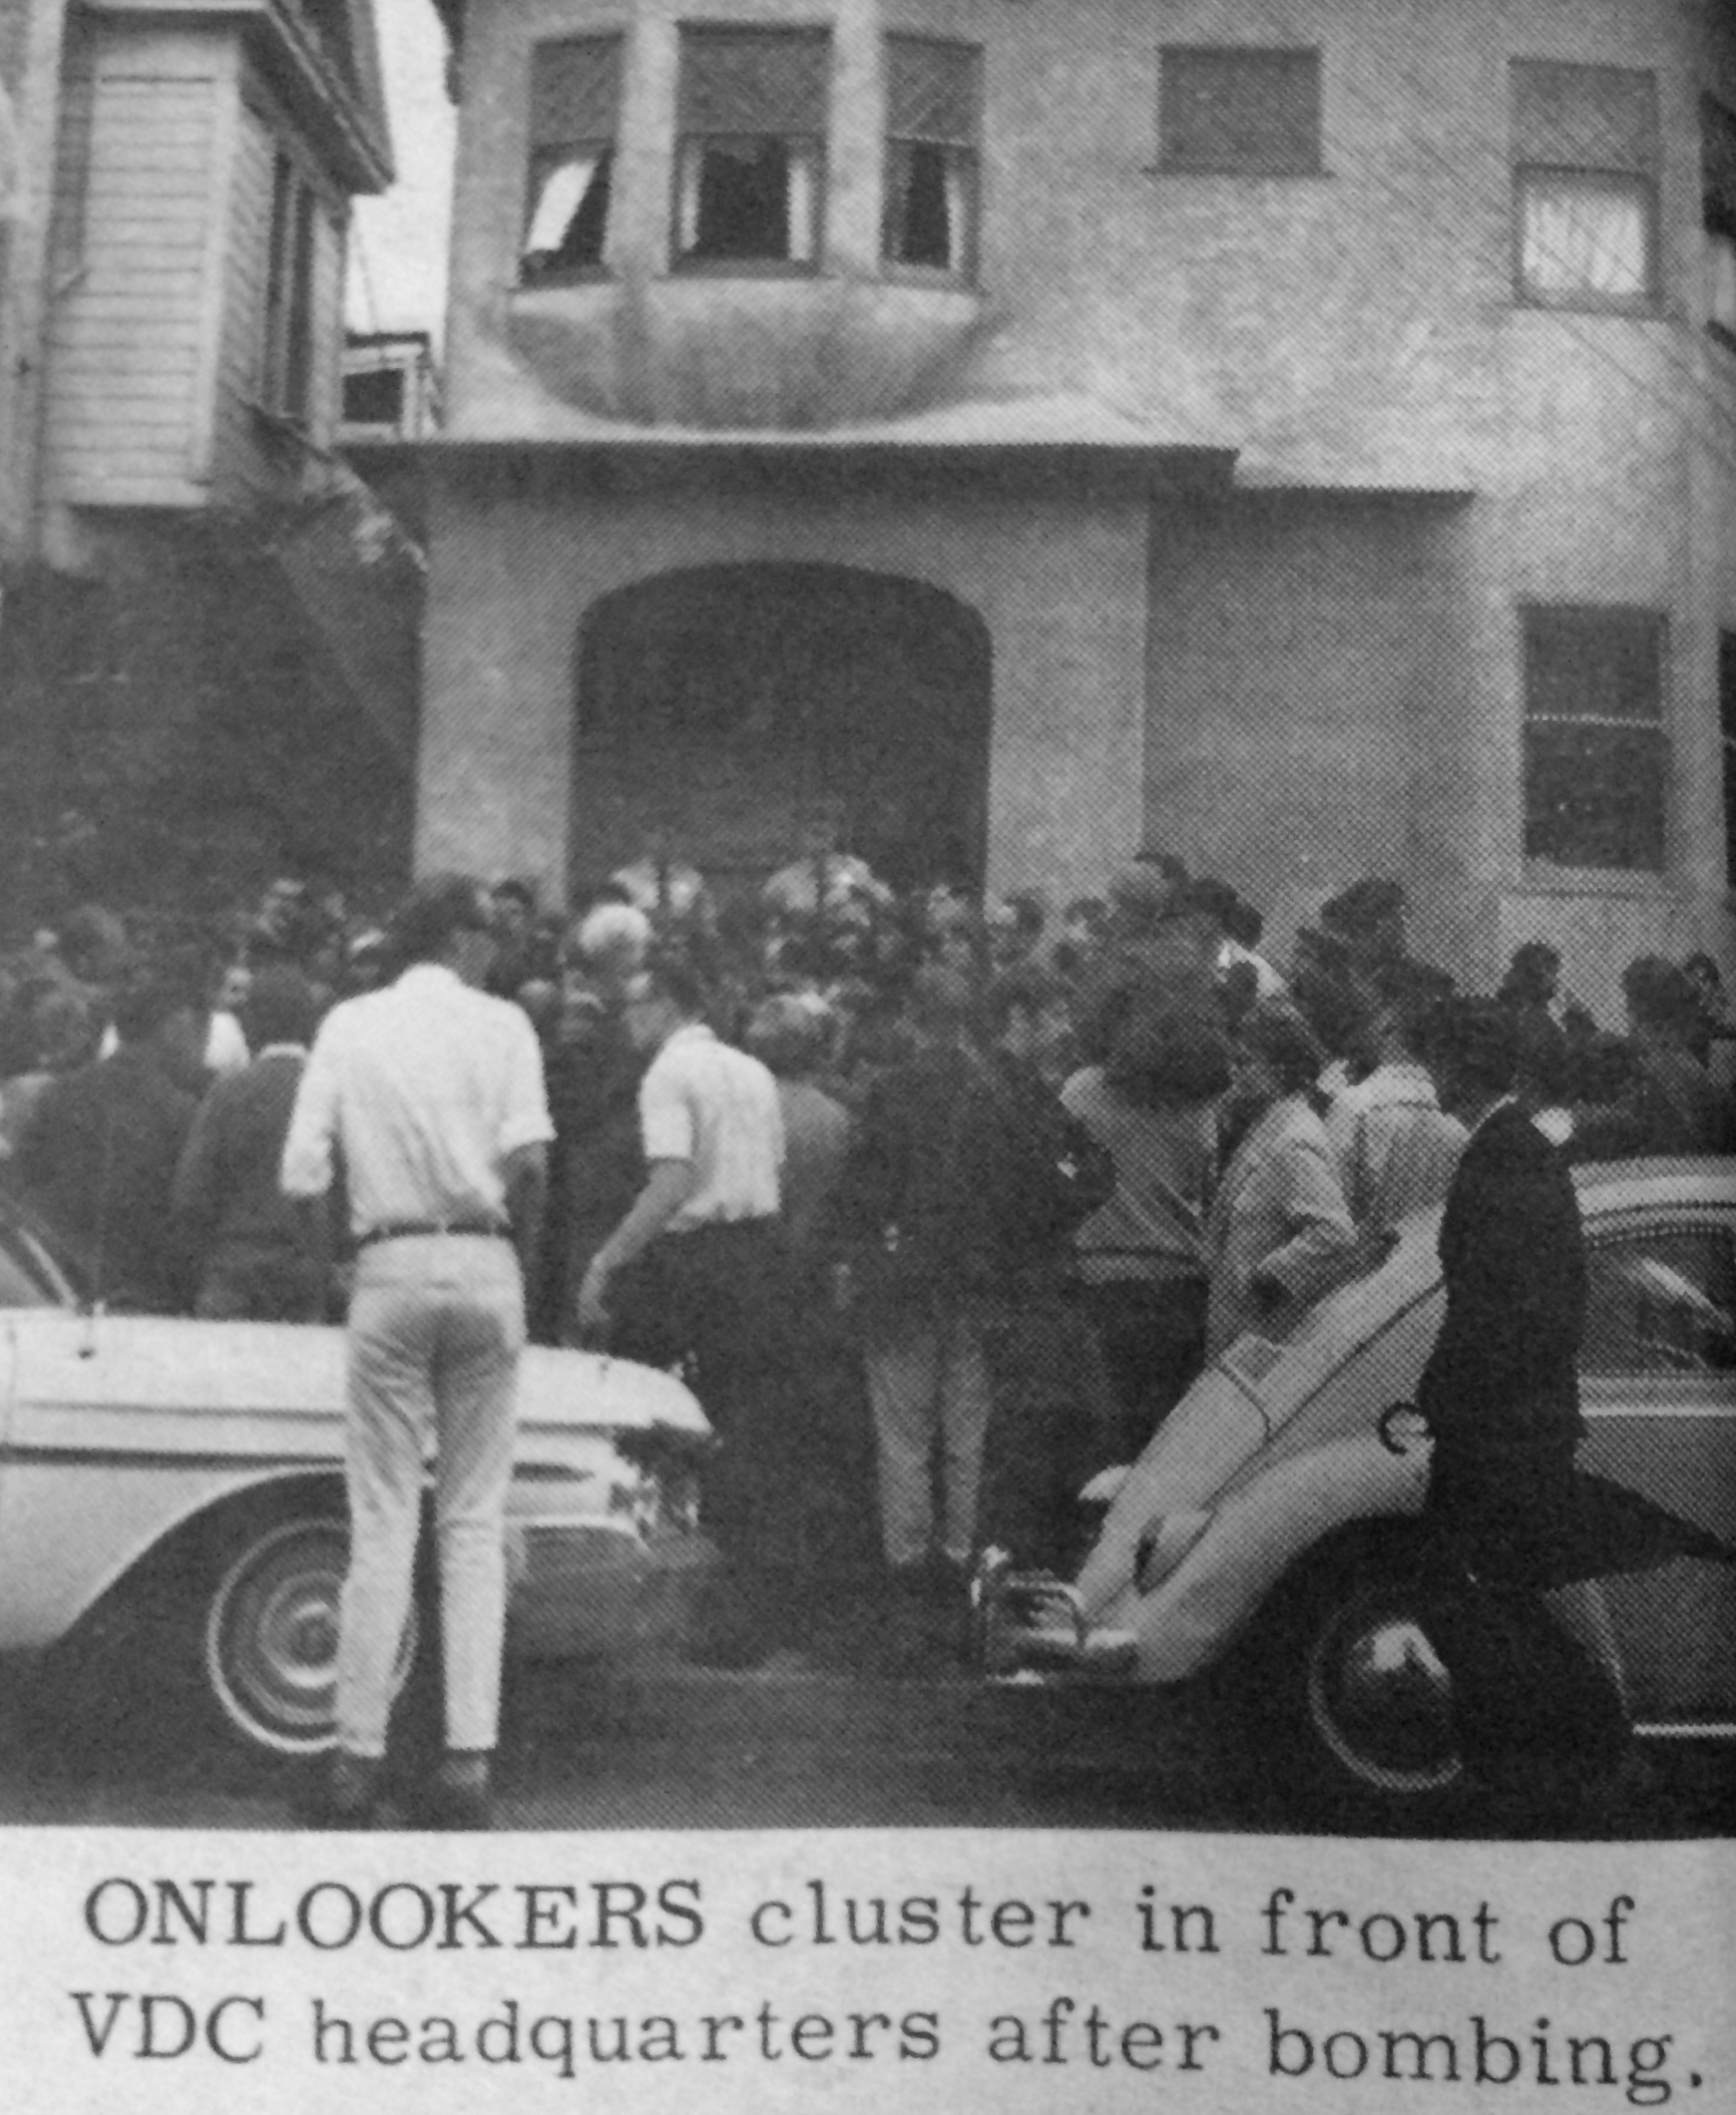 Berkeley Citizen, April 15, 1966